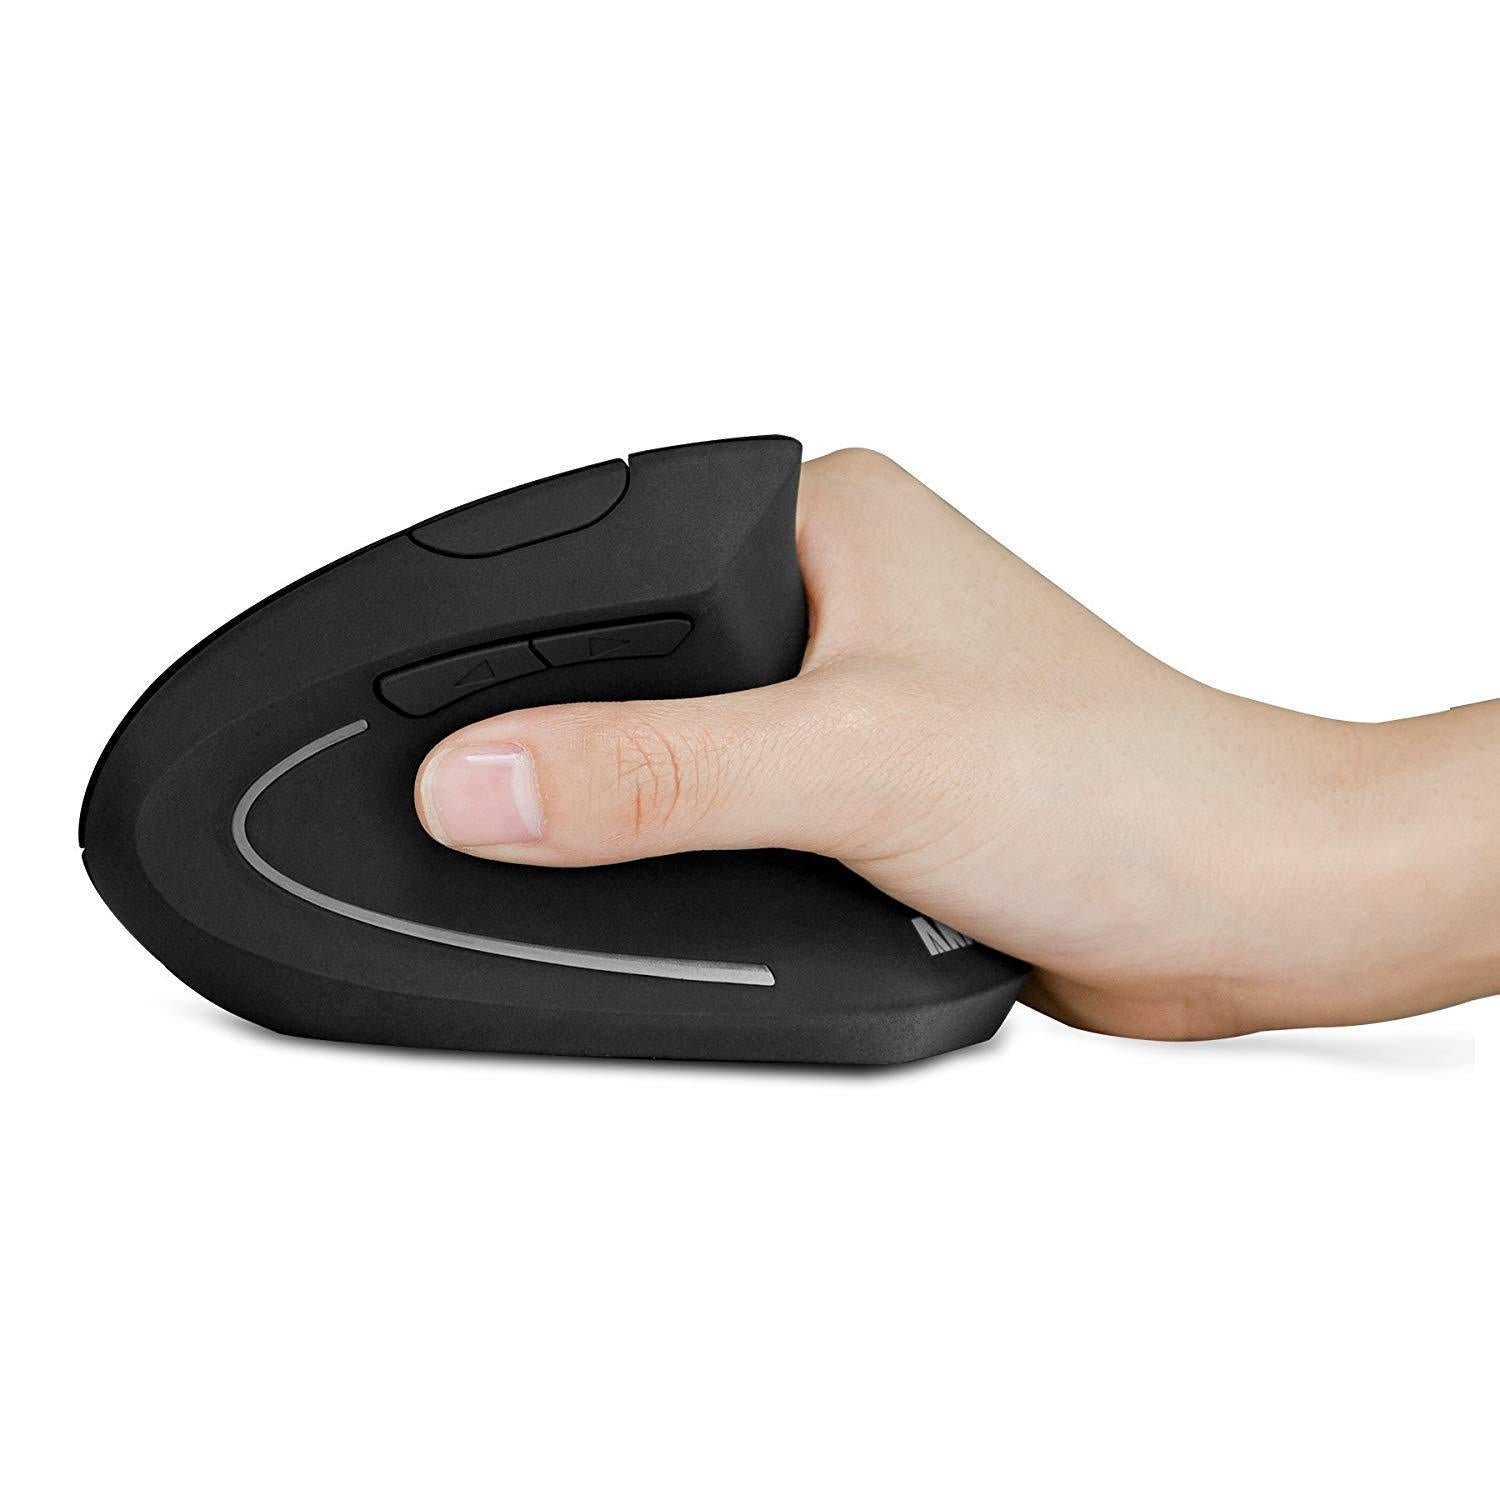 VERTICAL ERGONOMIC WIRELESS MOUSE(Buy 2 Free Shipping)